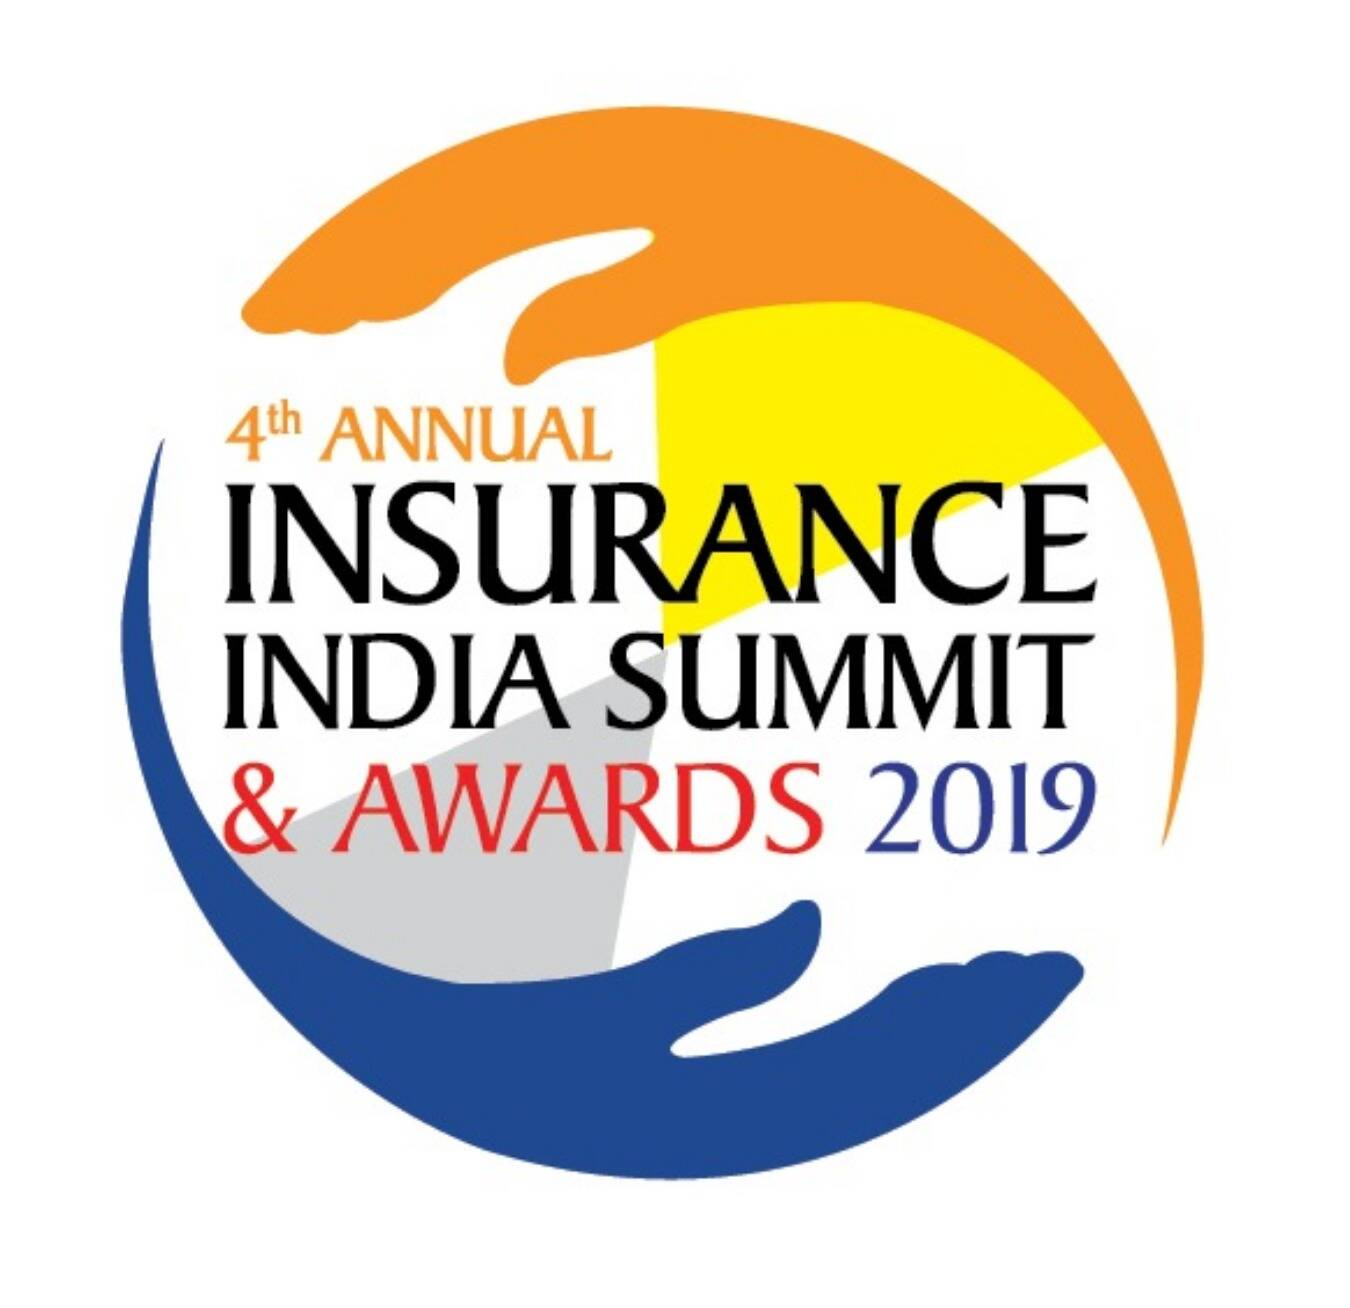 TO THE NEW Sponsors the 4th Annual Insurance India Summit